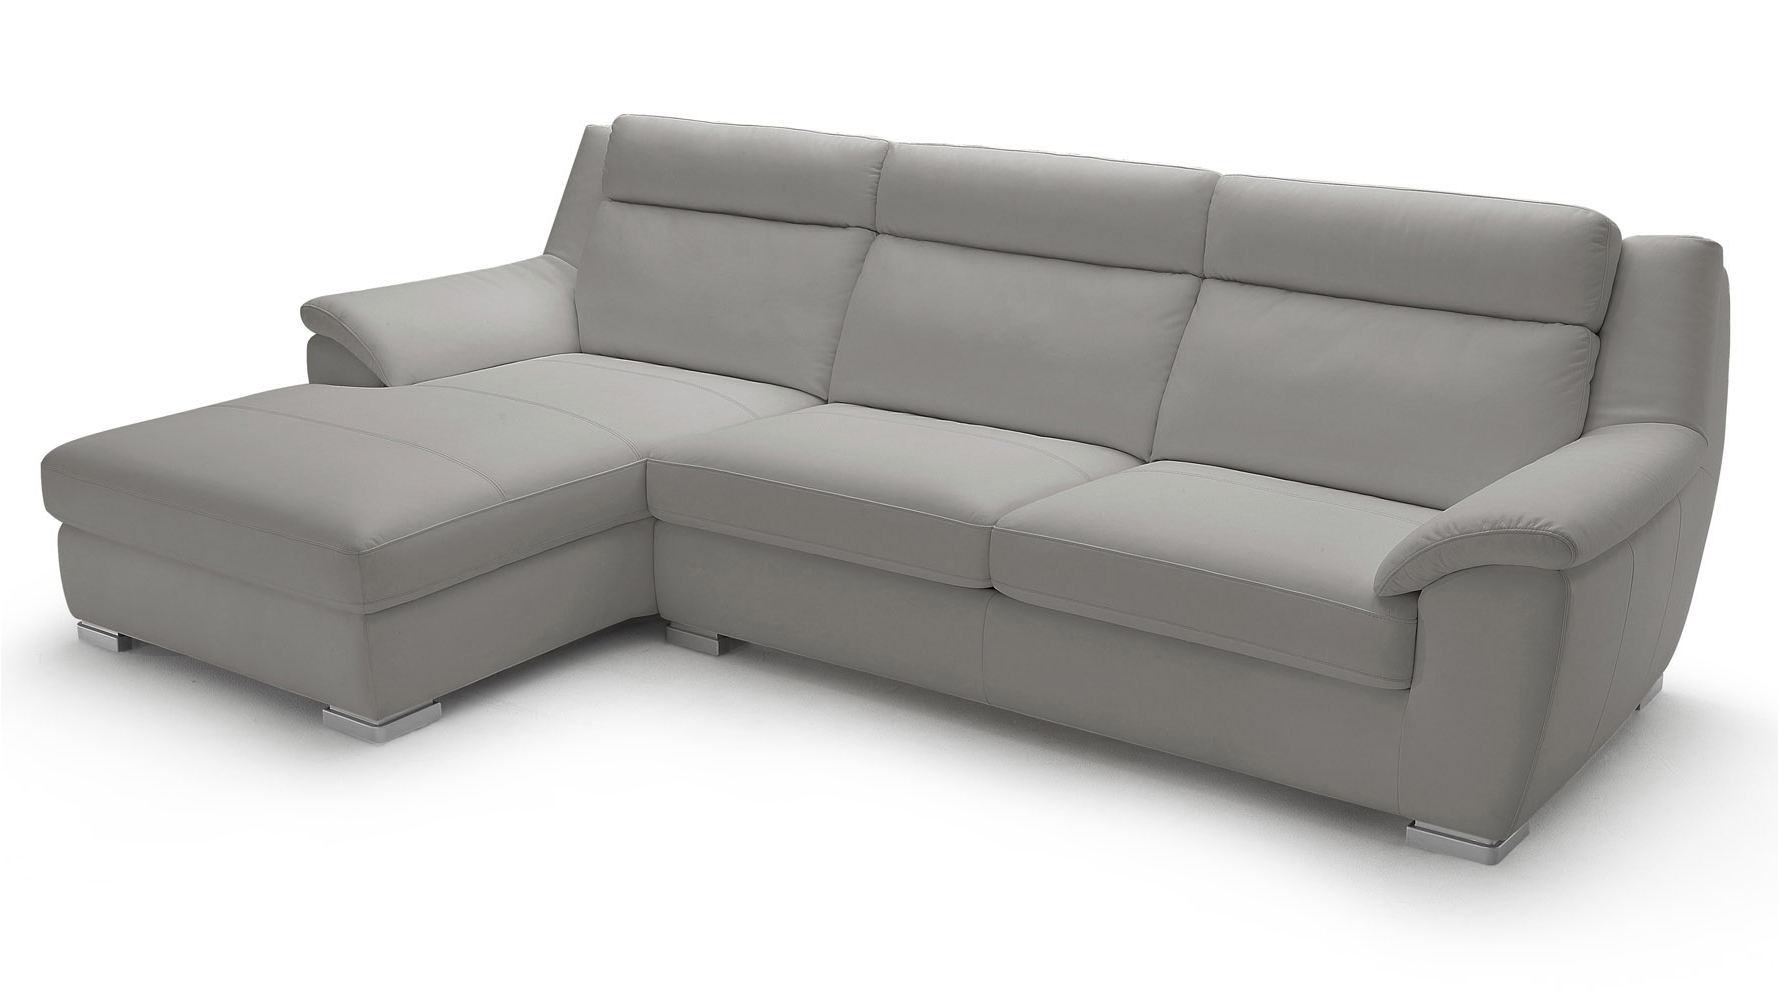 Manor Light Grey Top Grain Leather Sofa Sleeper Sectional With Within Famous Sleeper Chaises (View 7 of 15)